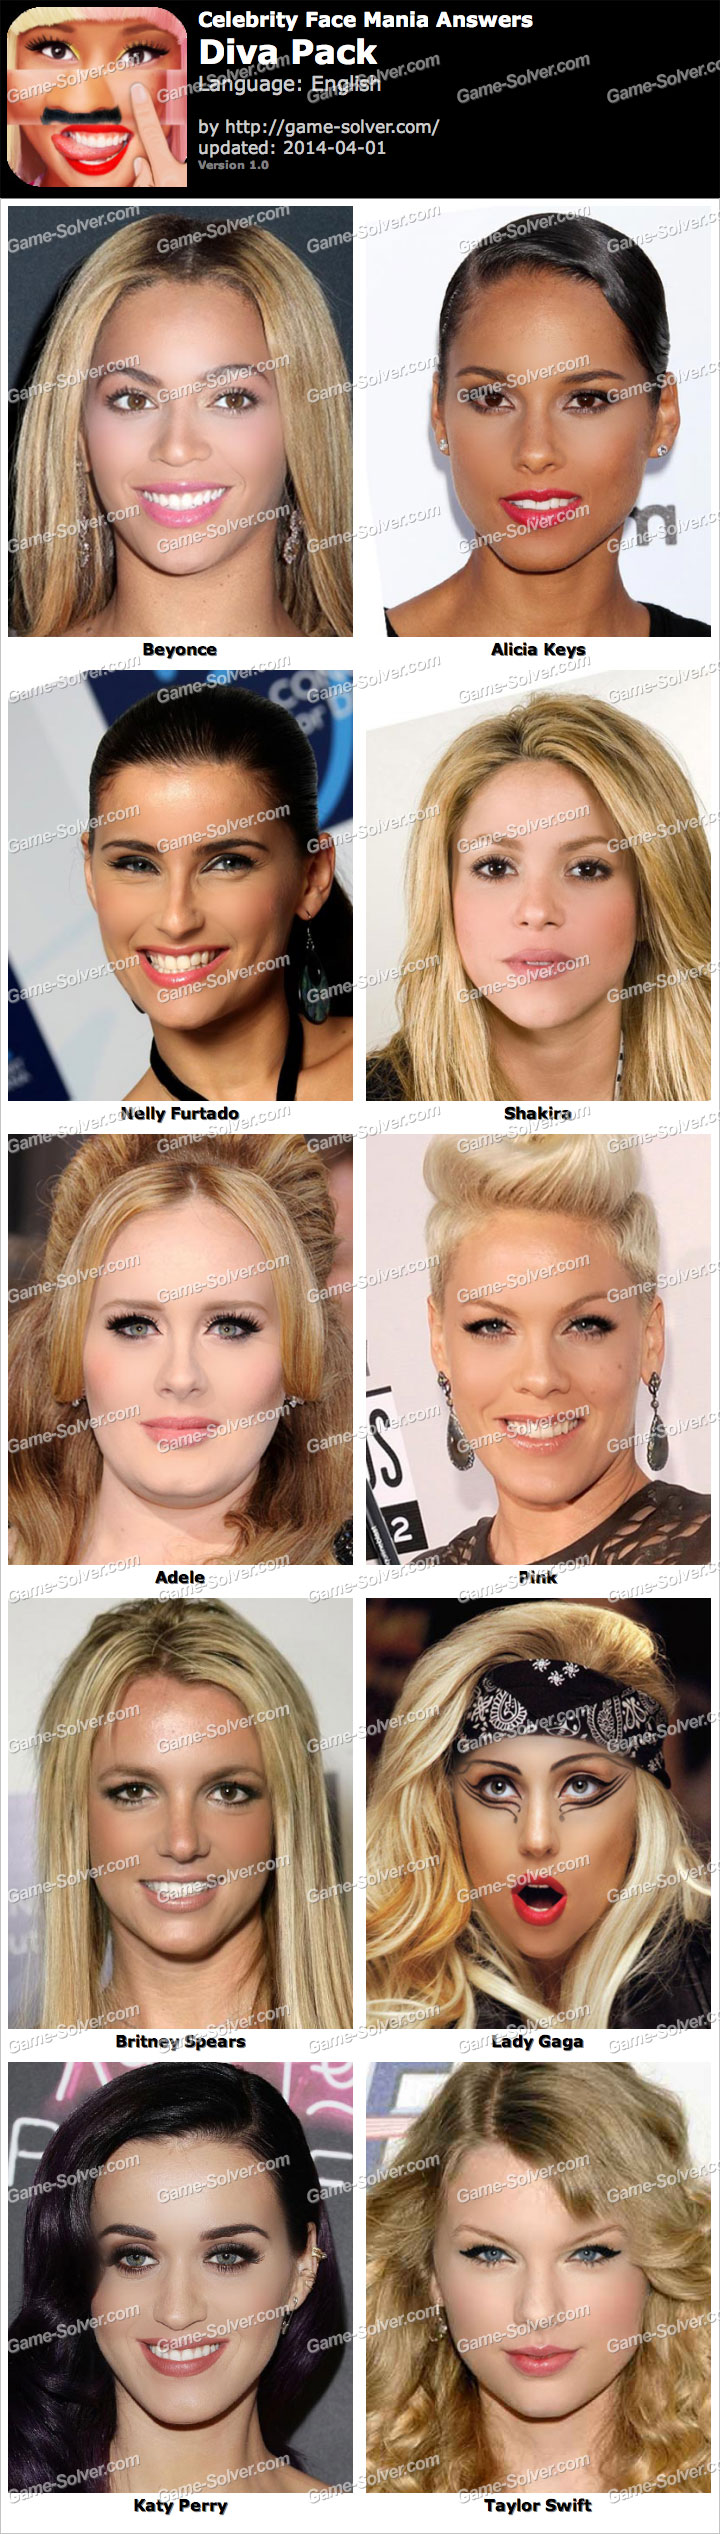 Celebrity Face Mania - Google Play MetricsCat